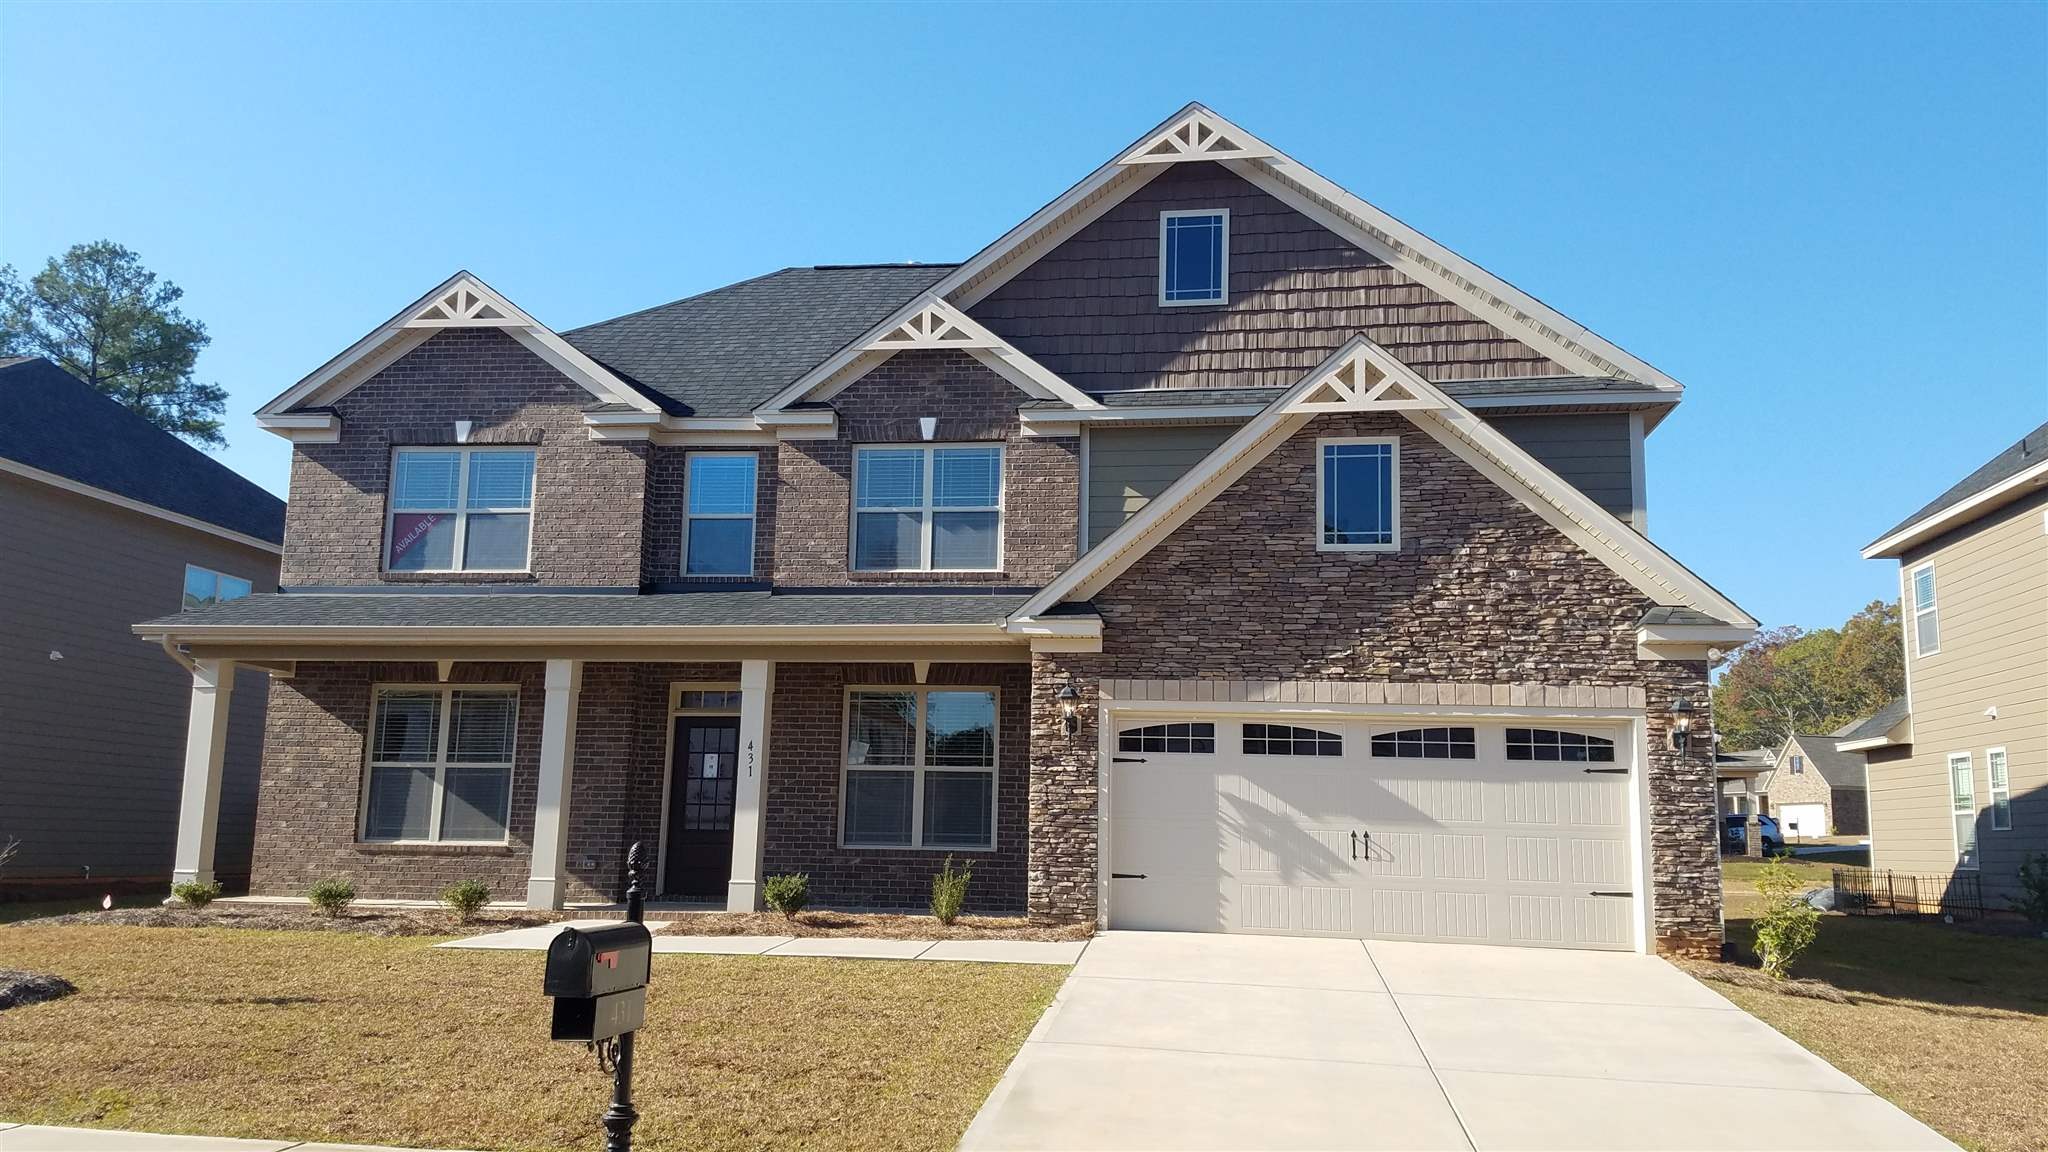 431 CORAL ROSE Drive, Irmo, SC 29063